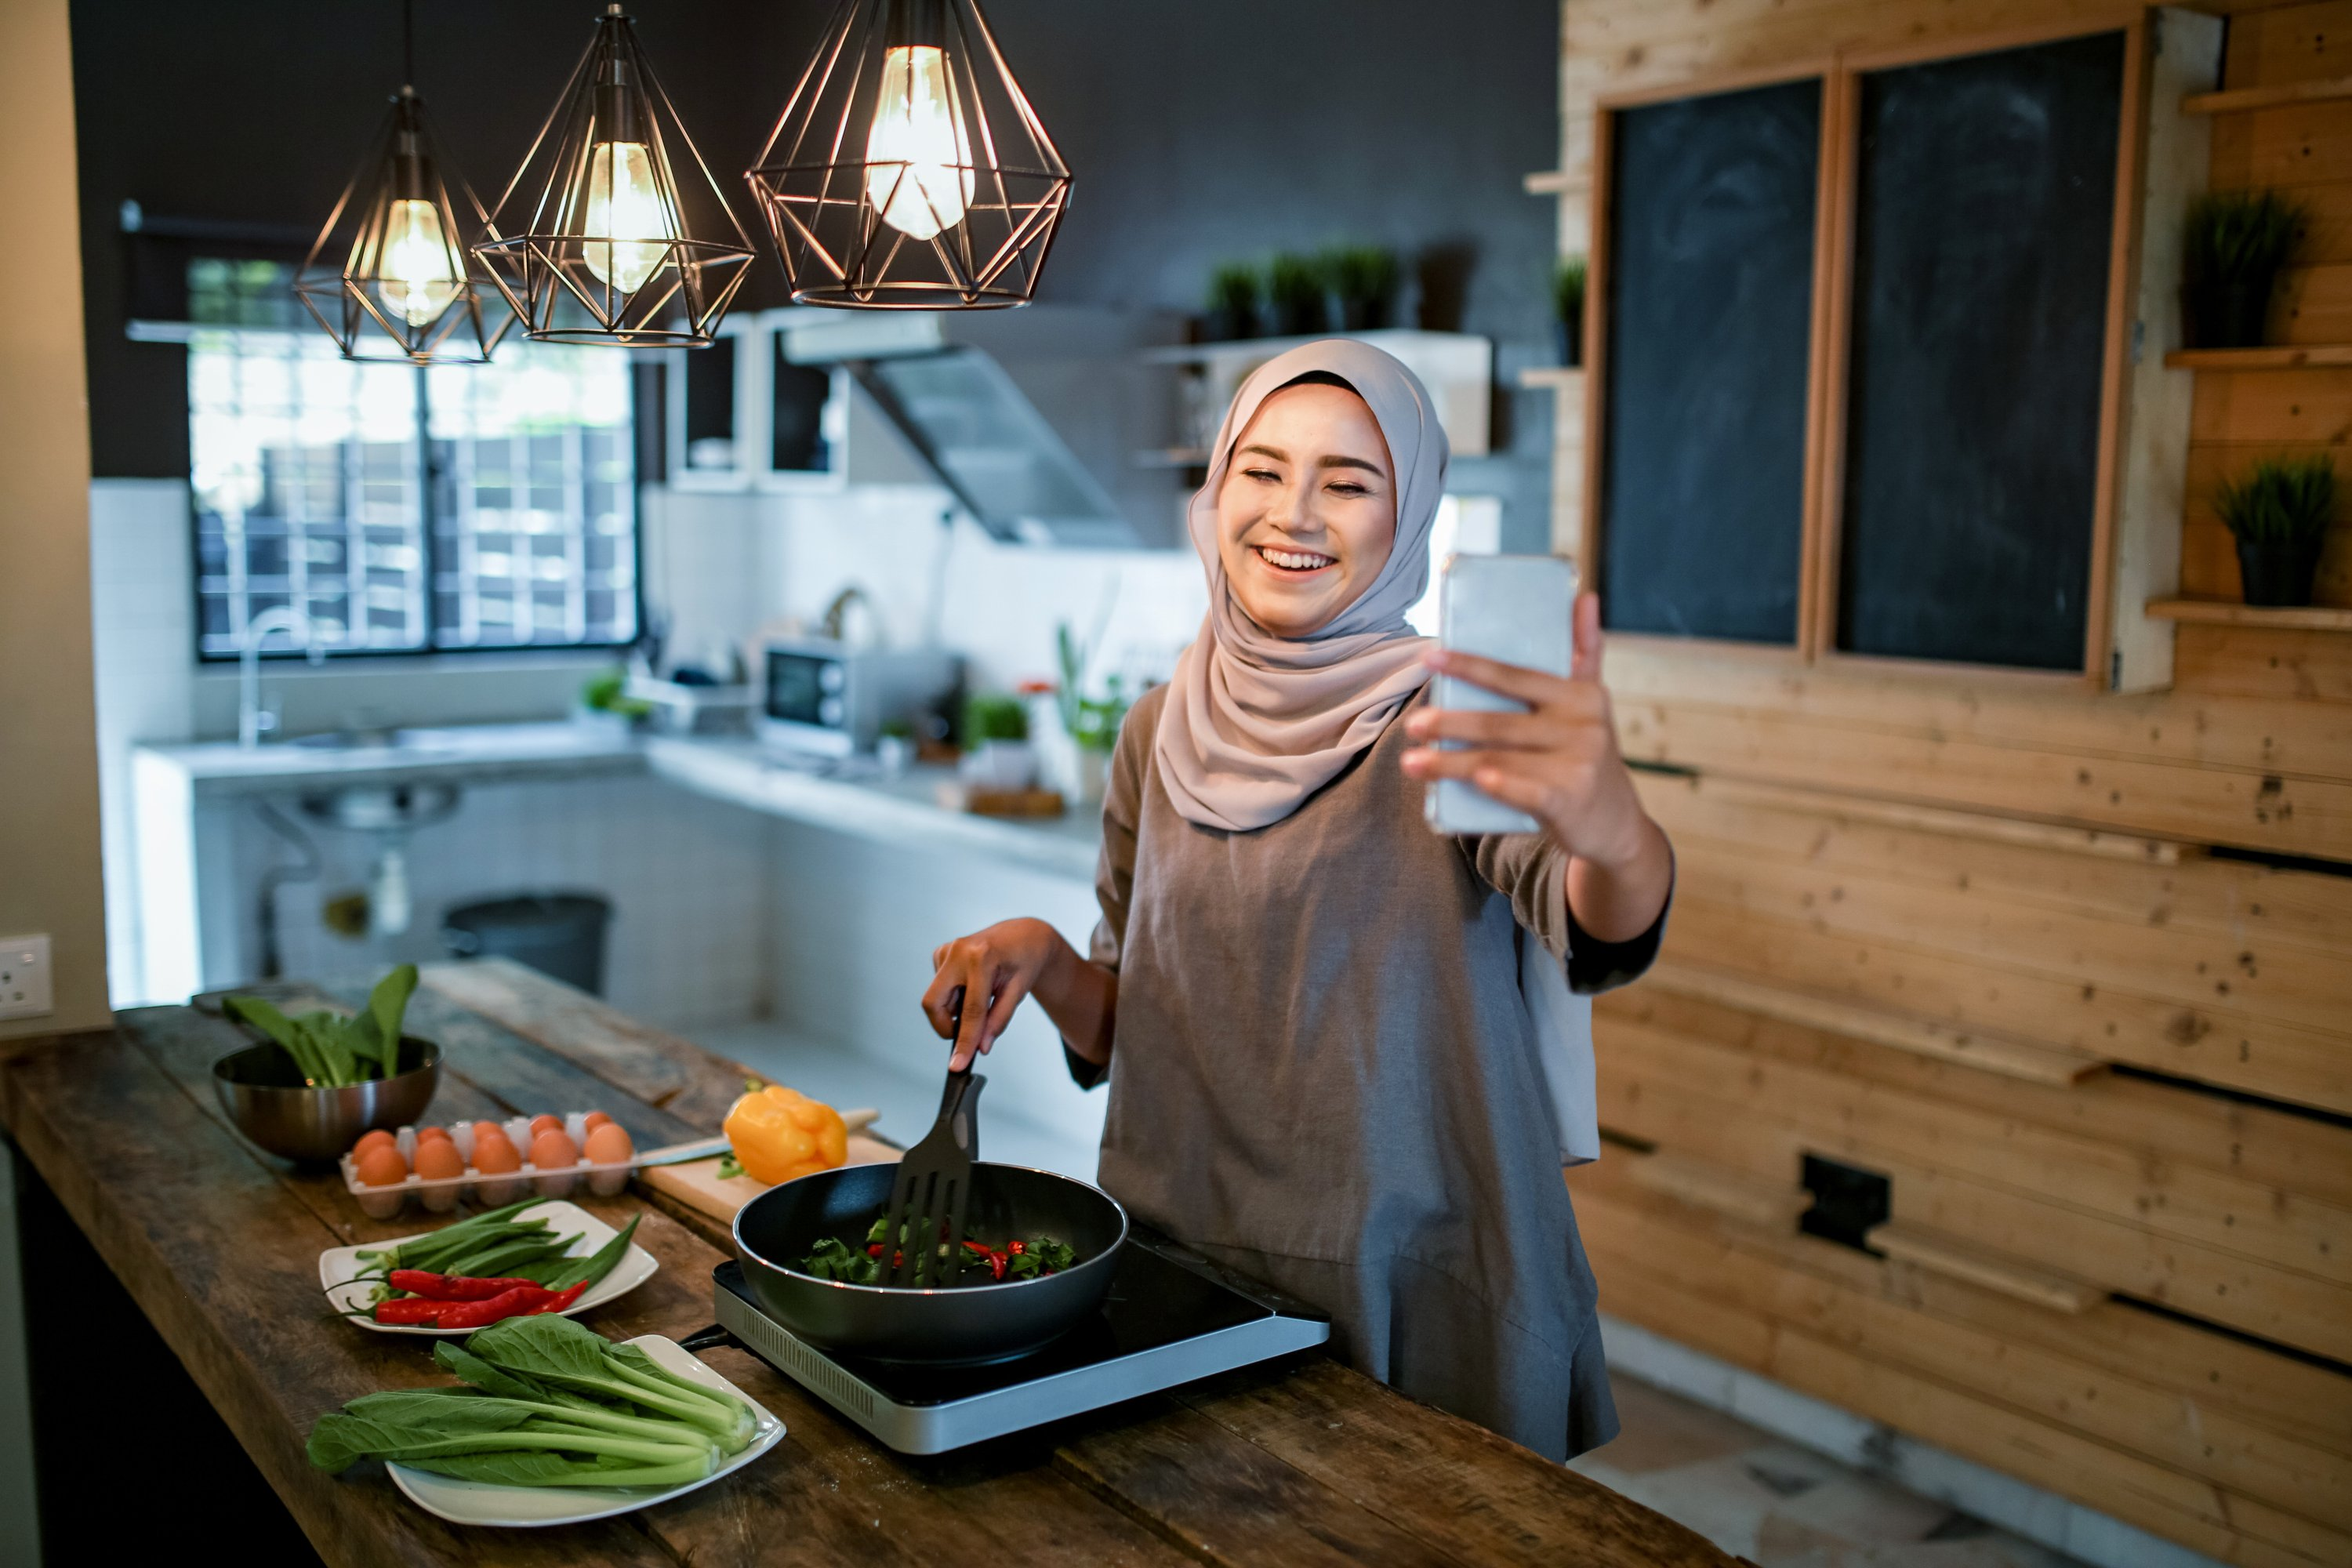 You can share your recipes with your family and friends by going live on Instagram this Ramadan. (iStock Photo)